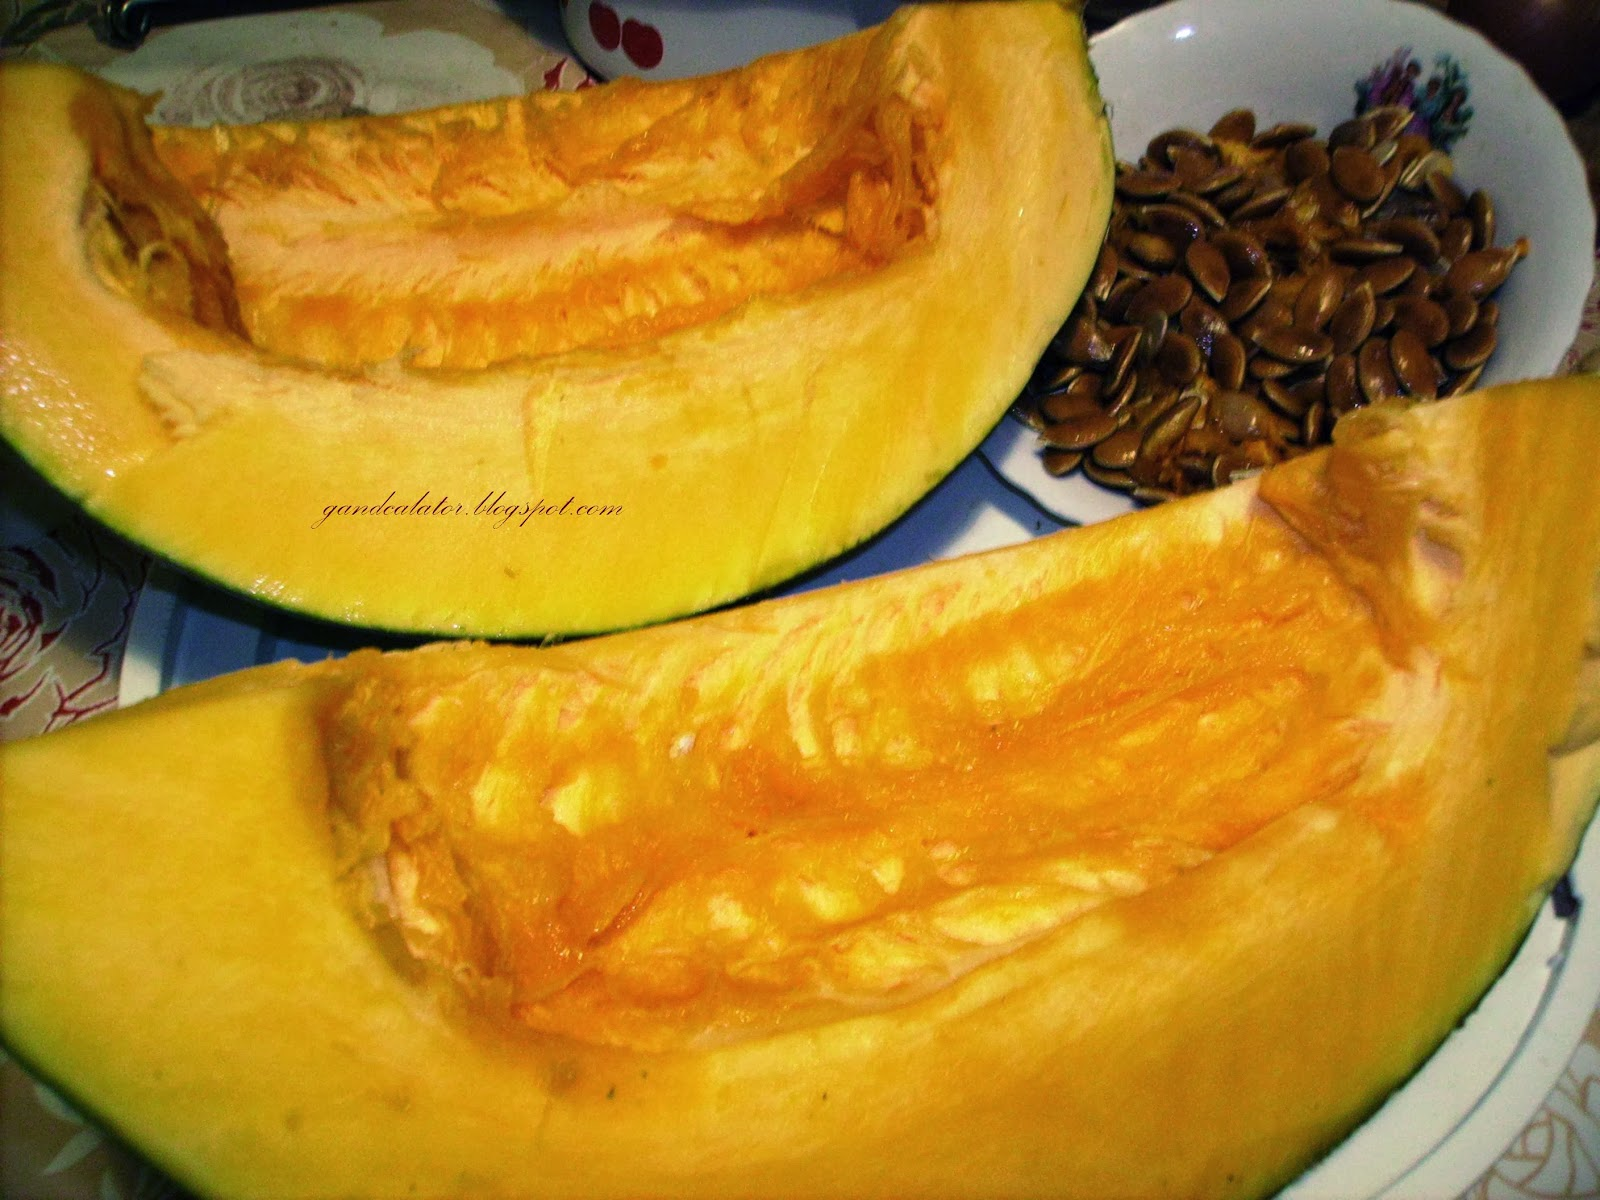 """Pumpkin refers to certain cultivars of squash, most commonly those of Cucurbita pepo, that are round, with smooth, slightly ribbed skin and deep yellow to orange coloration. The thick shell contains the seeds and pulp. Some exceptionally large cultivars of squash with similar appearance have also been derived from Cucurbita maxima. Specific cultivars of winter squash derived from other species, including C. argyrosperma, and C. moschata, are also sometimes called ""pumpkin""."